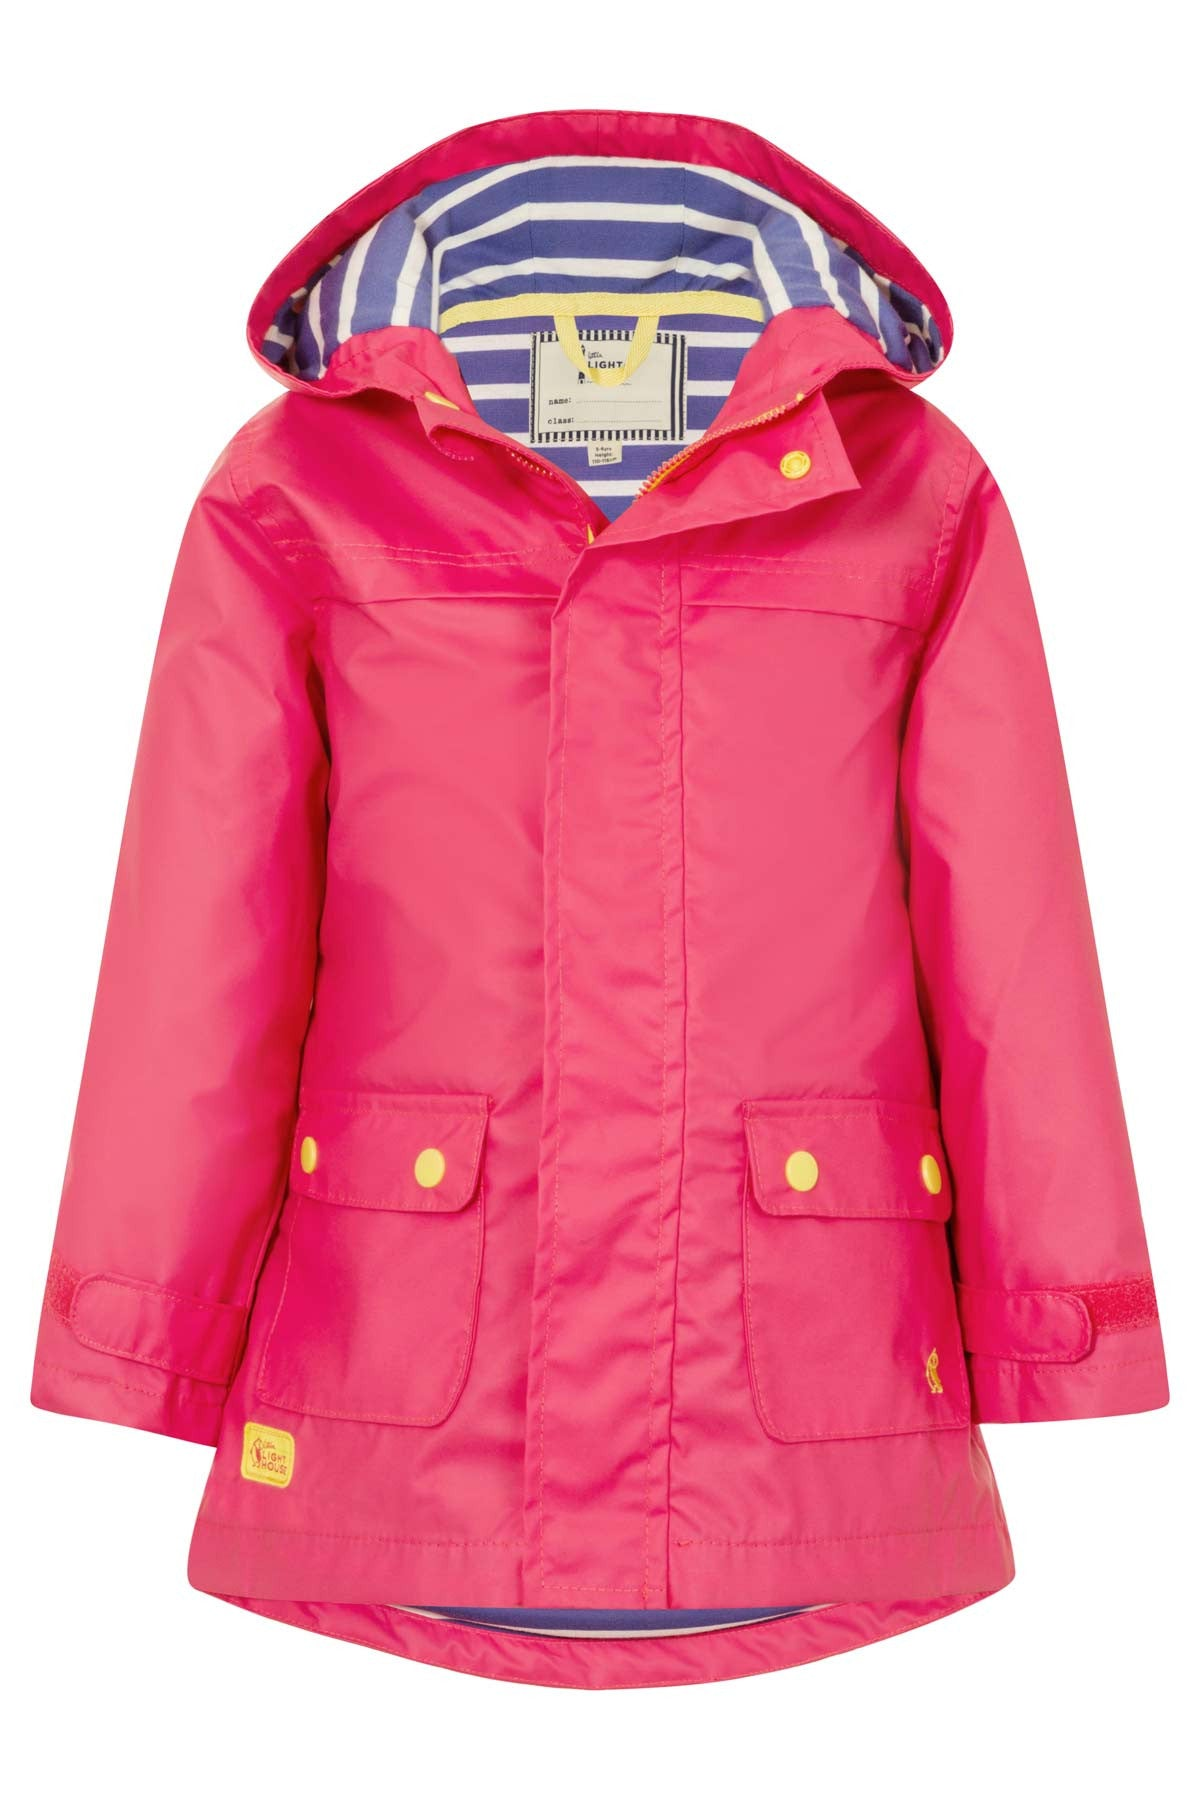 Shop for girls rain coat online at Target. Free shipping on purchases over $35 and save 5% every day with your Target REDcard.